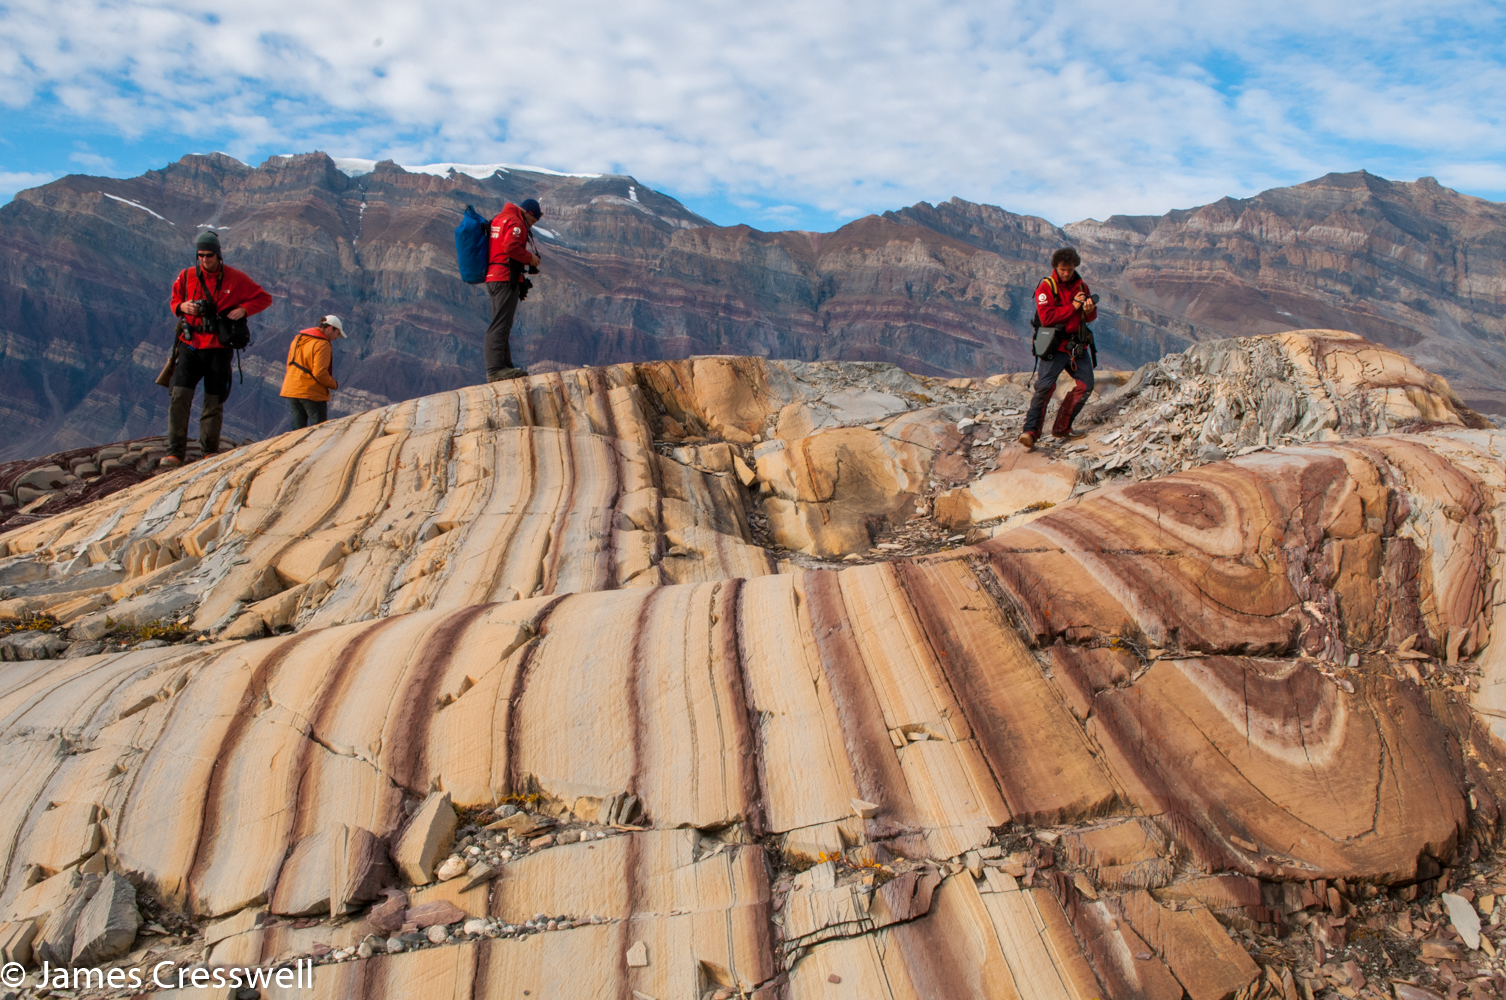 A photograph of people standing on stripy rocks, taken in east Greenland on a PolarWorld Travel placed cruise